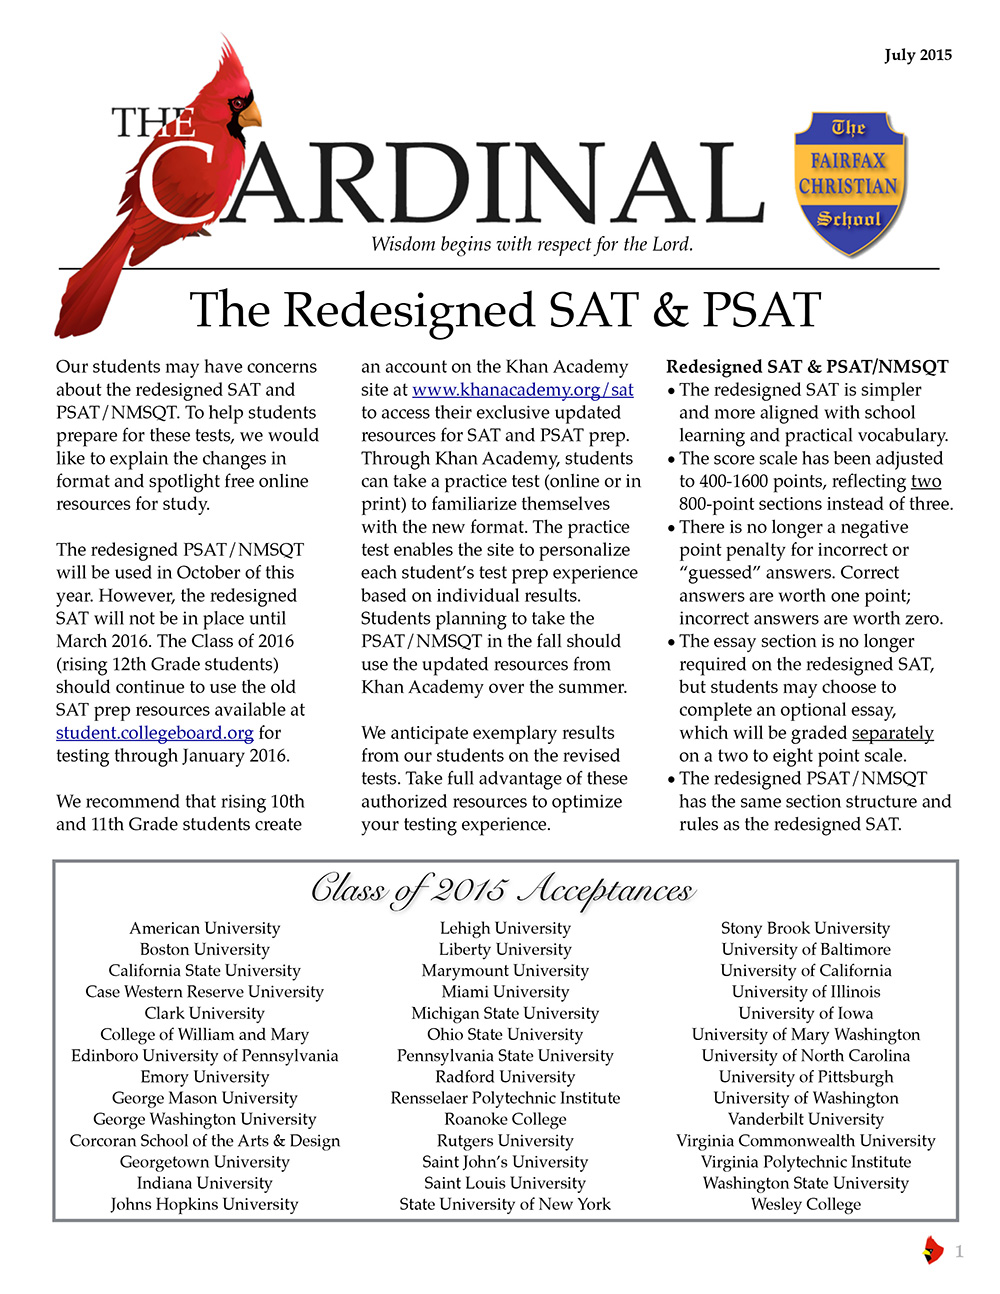 The fairfax christian school school news blog viewdownload the july 2015 edition of the cardinal fandeluxe Images